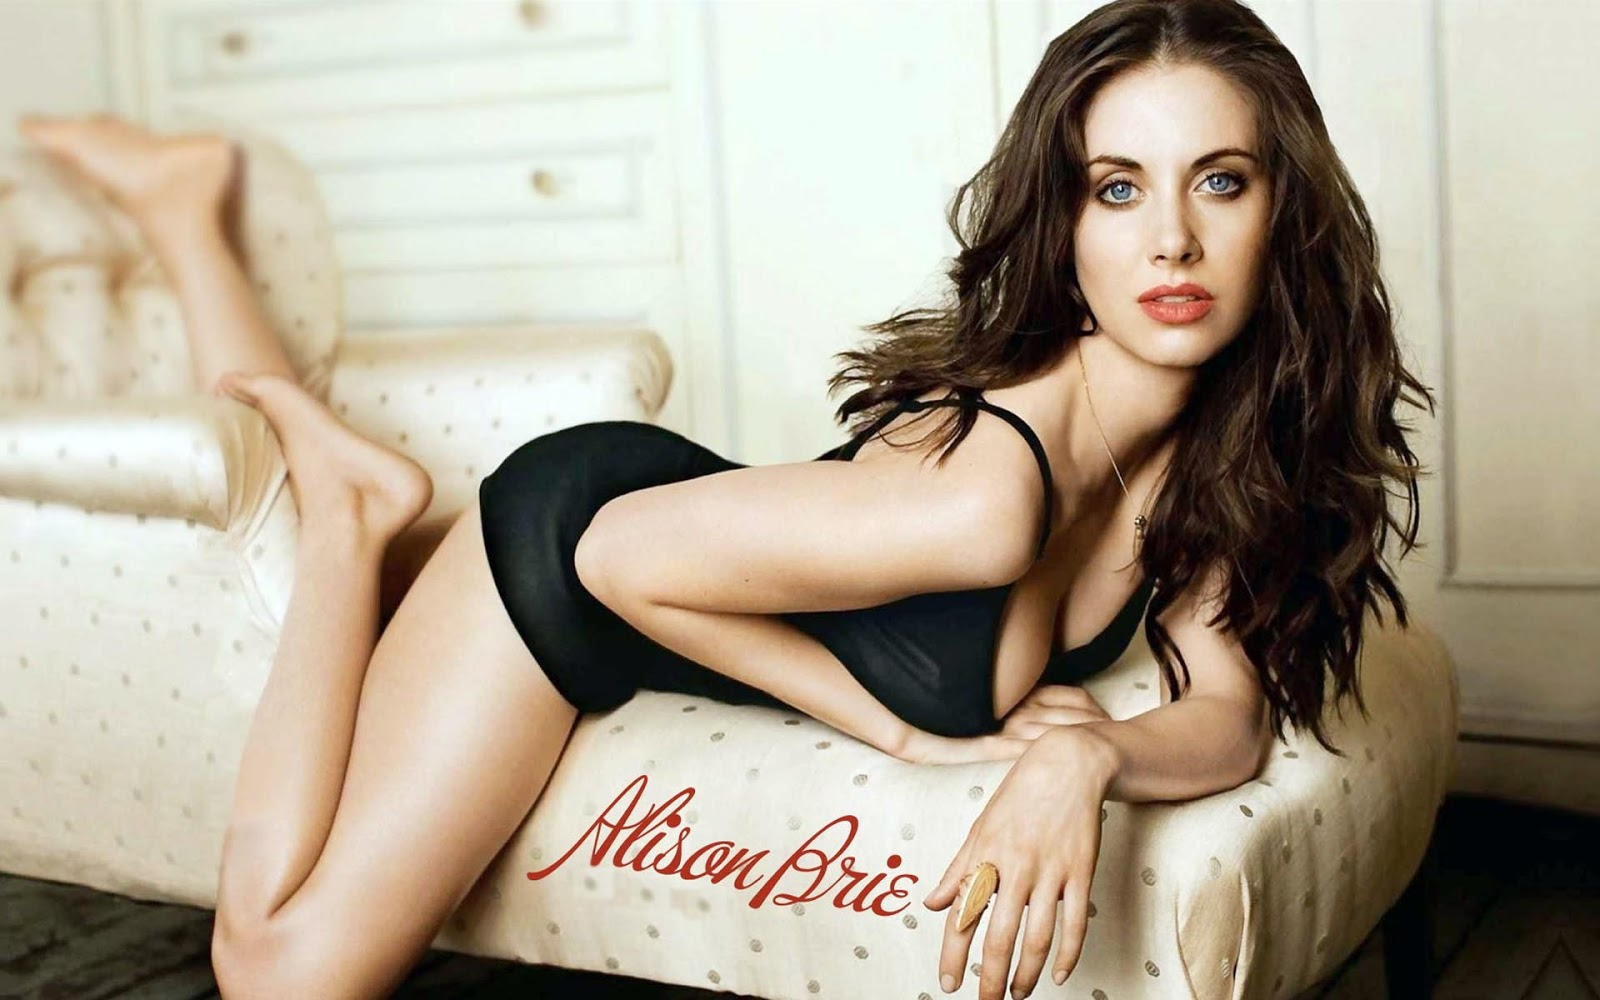 alison brie sexy actress hot photos | hd wallpapers (high definition